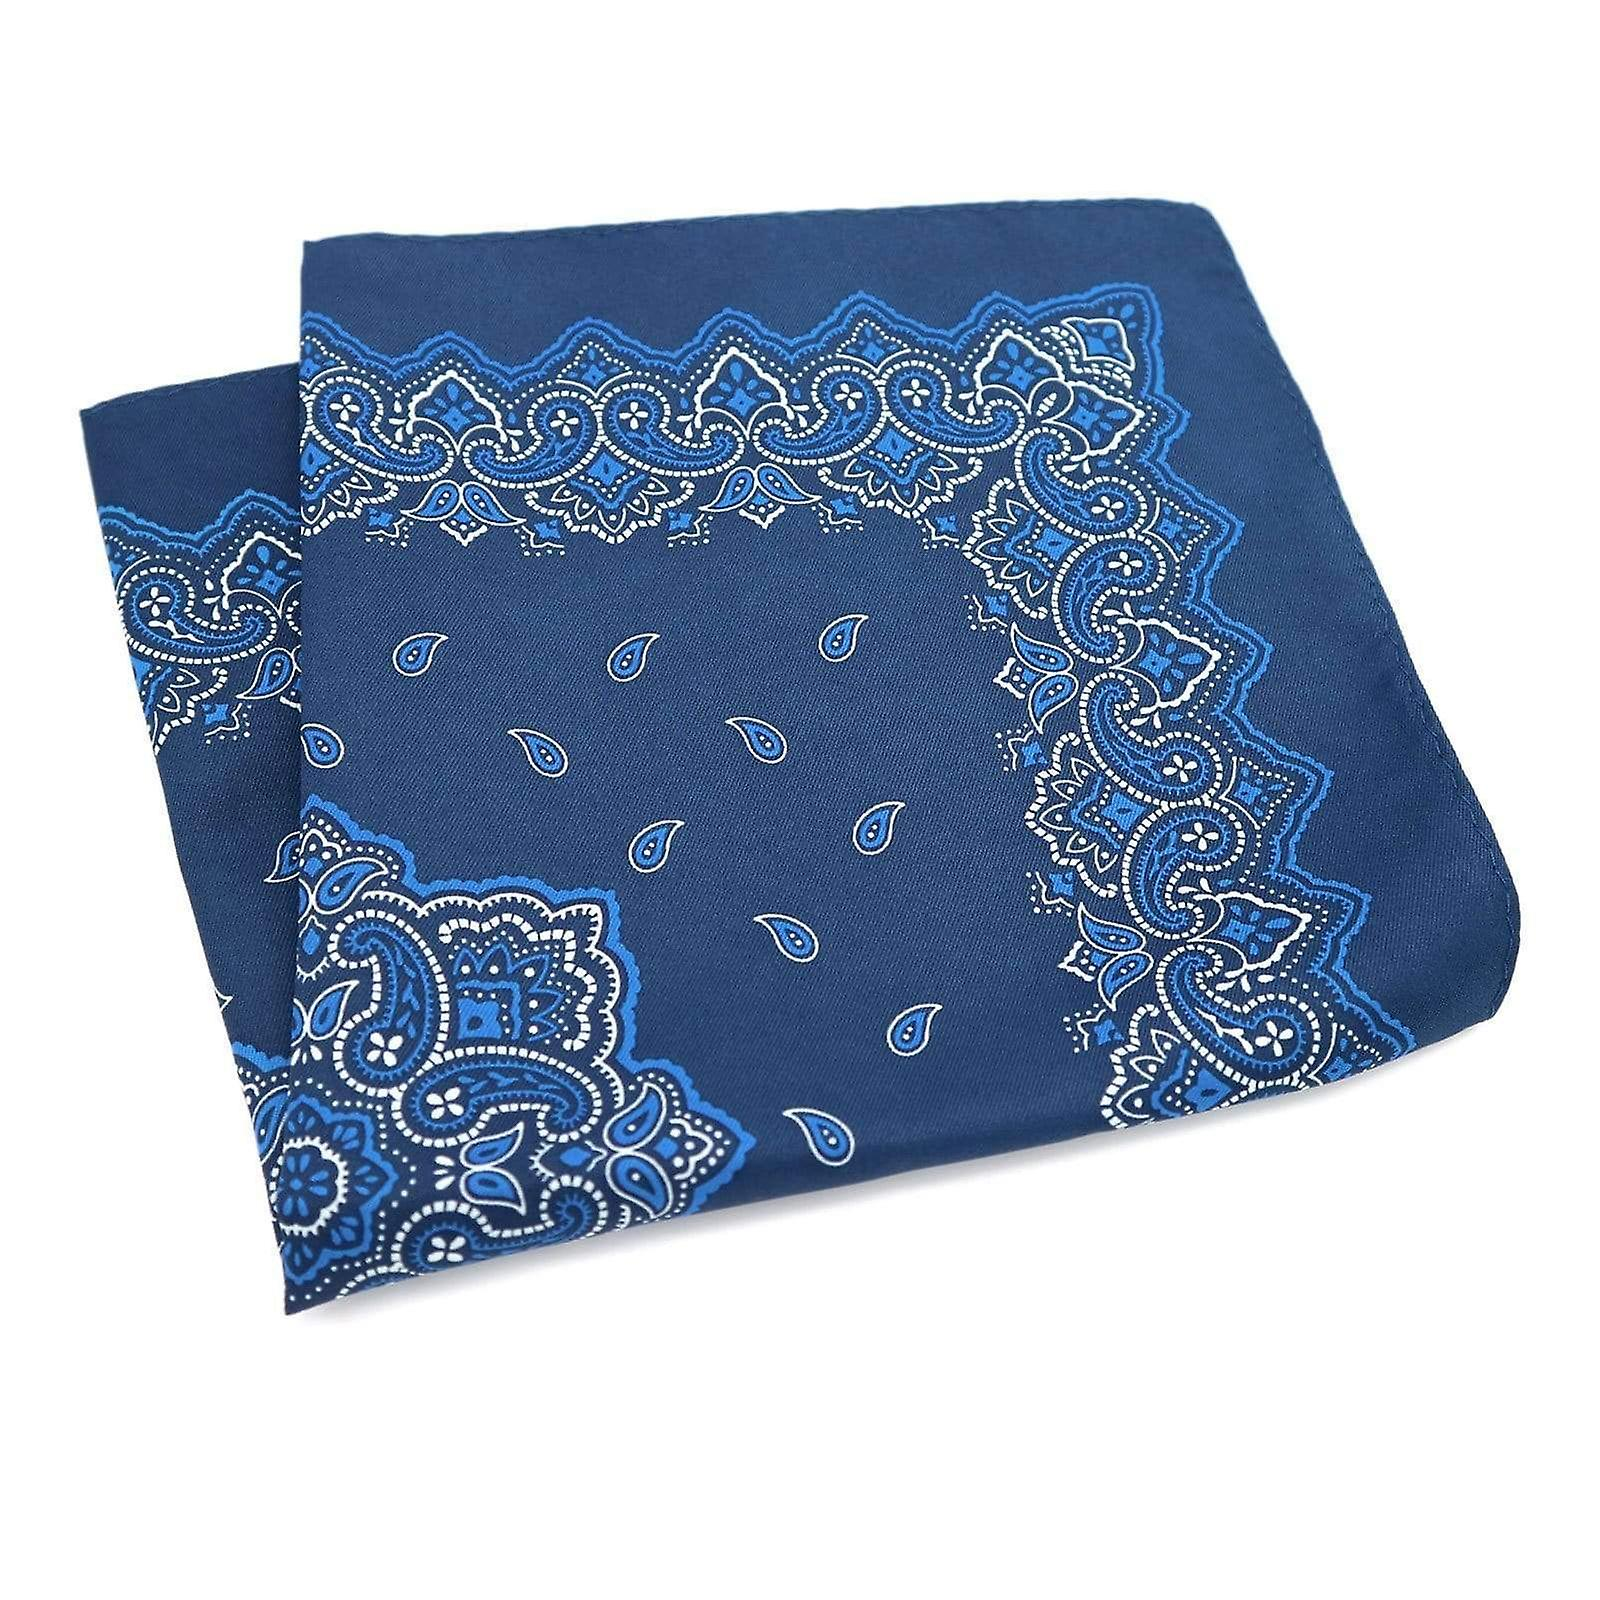 Blue paisley pattern large 33cm hanky pocket square